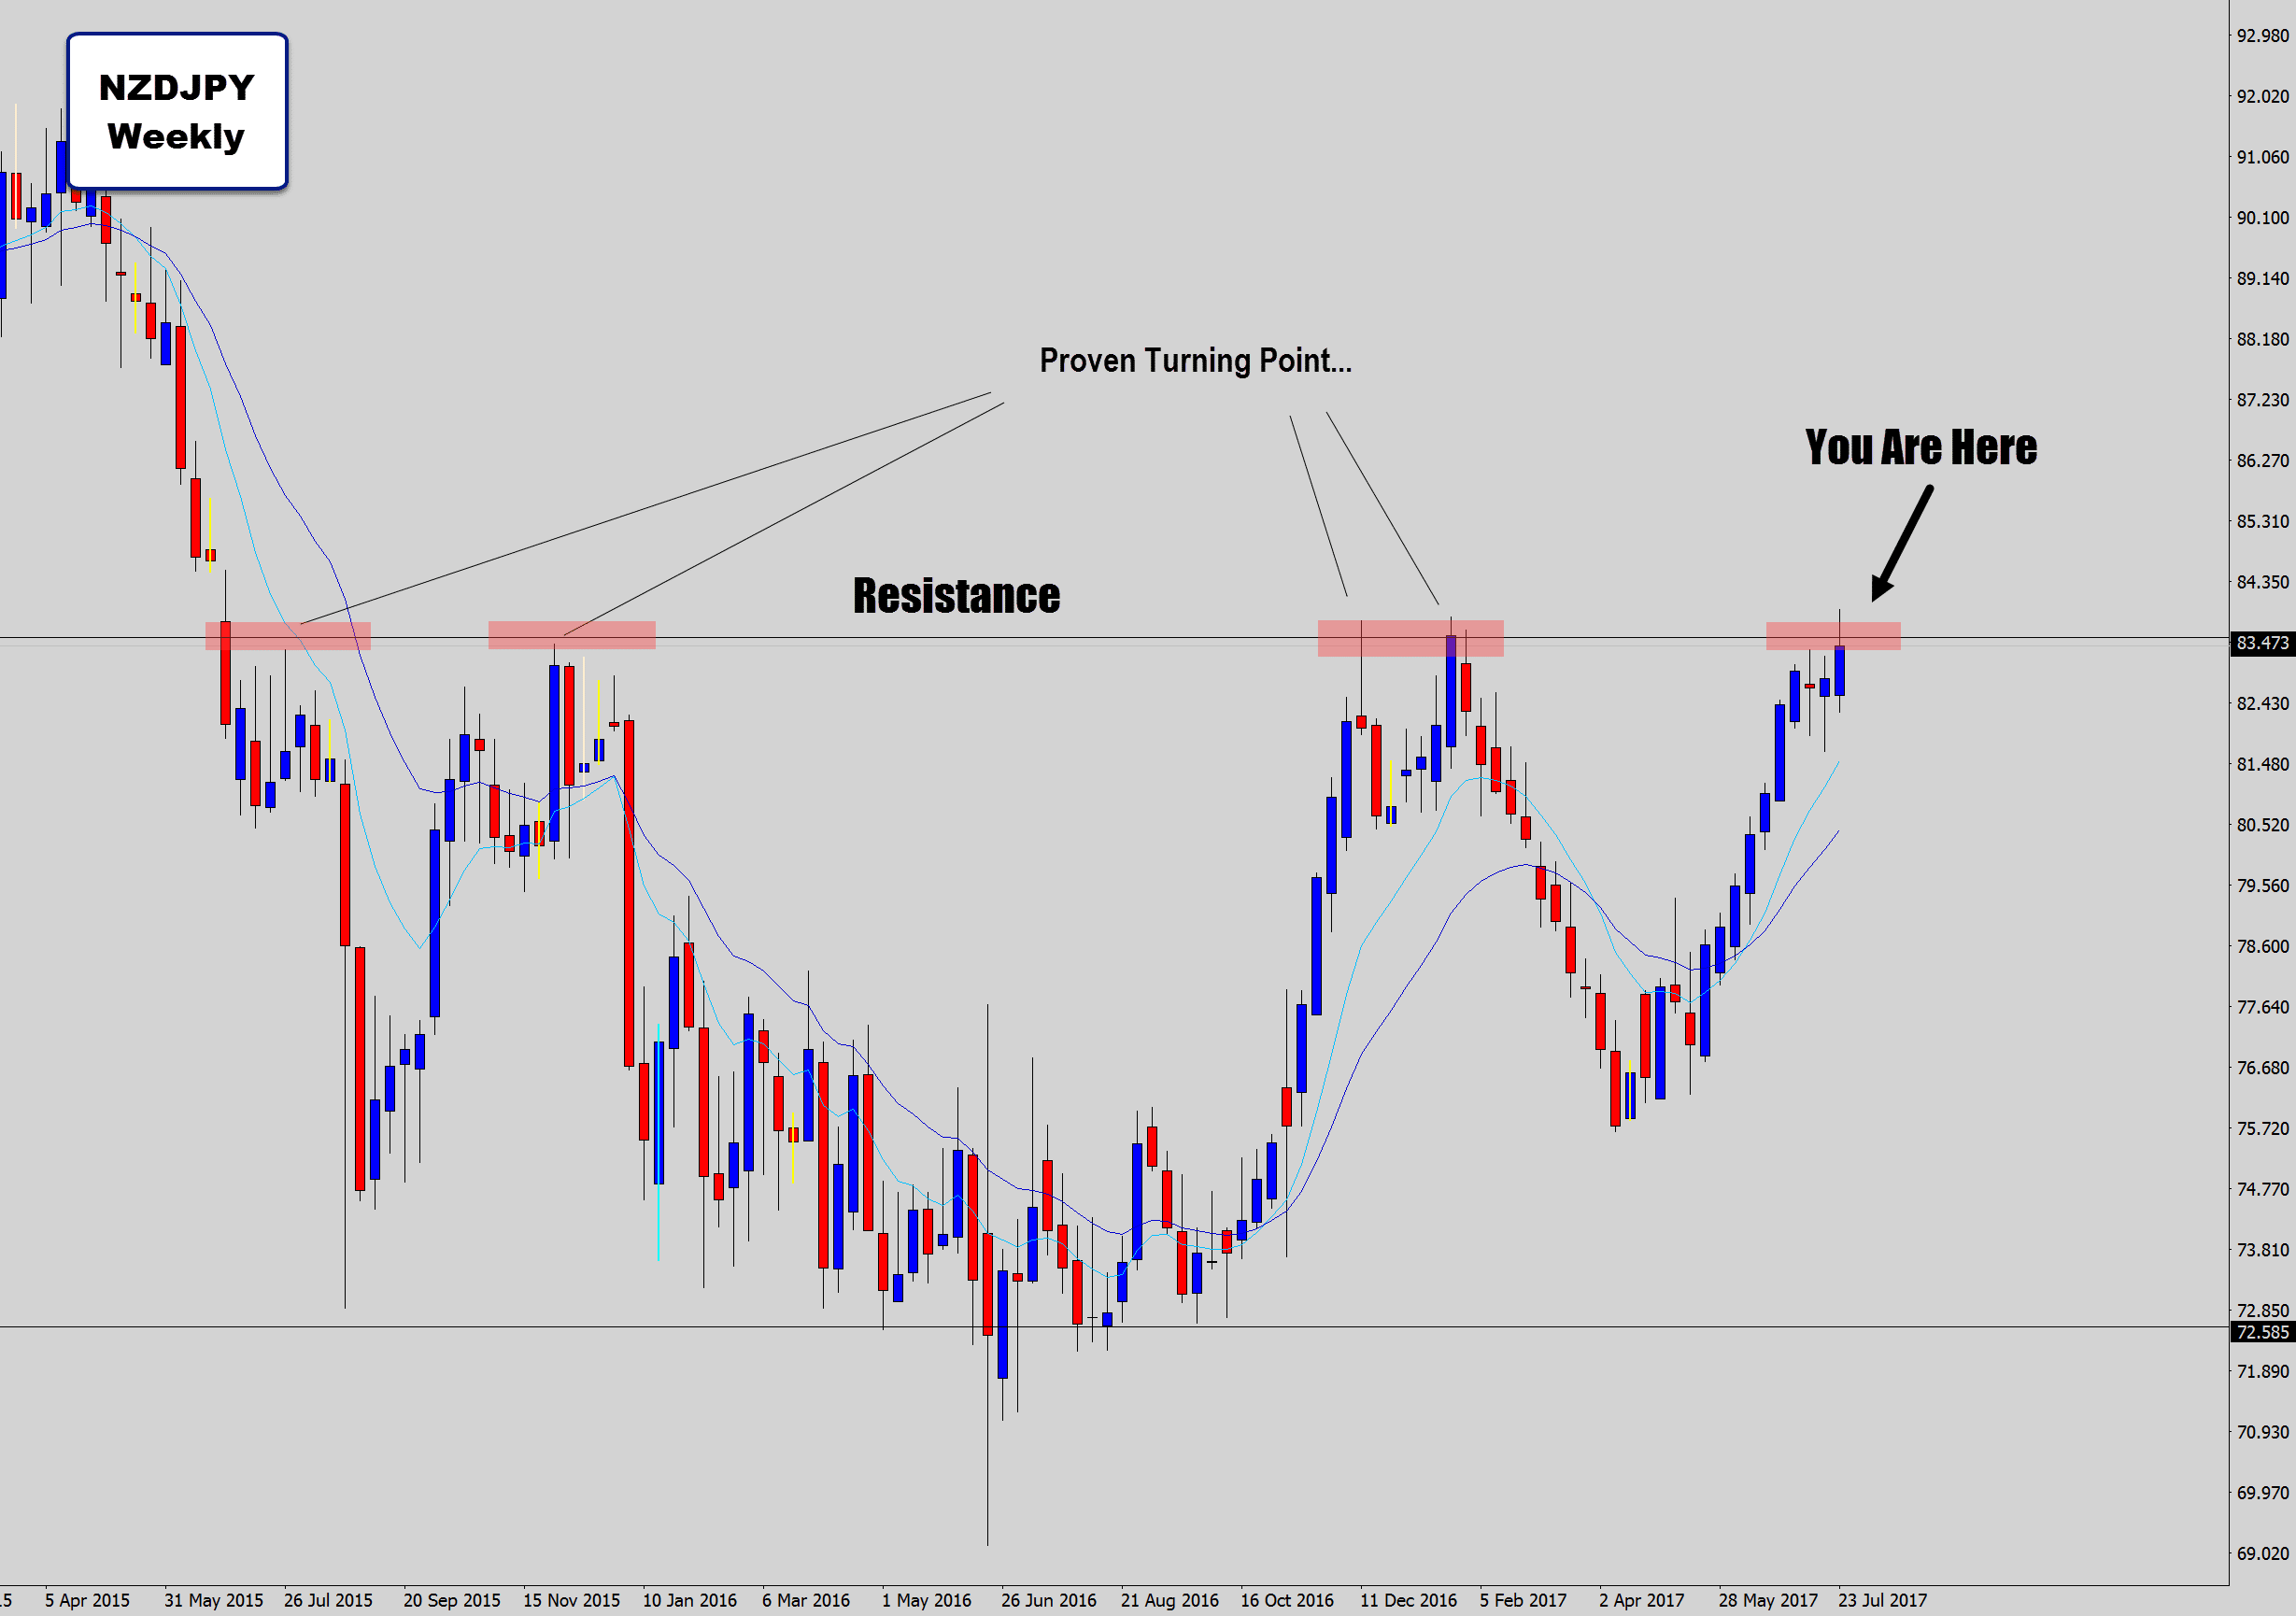 nzdjpy weekly major resistance level